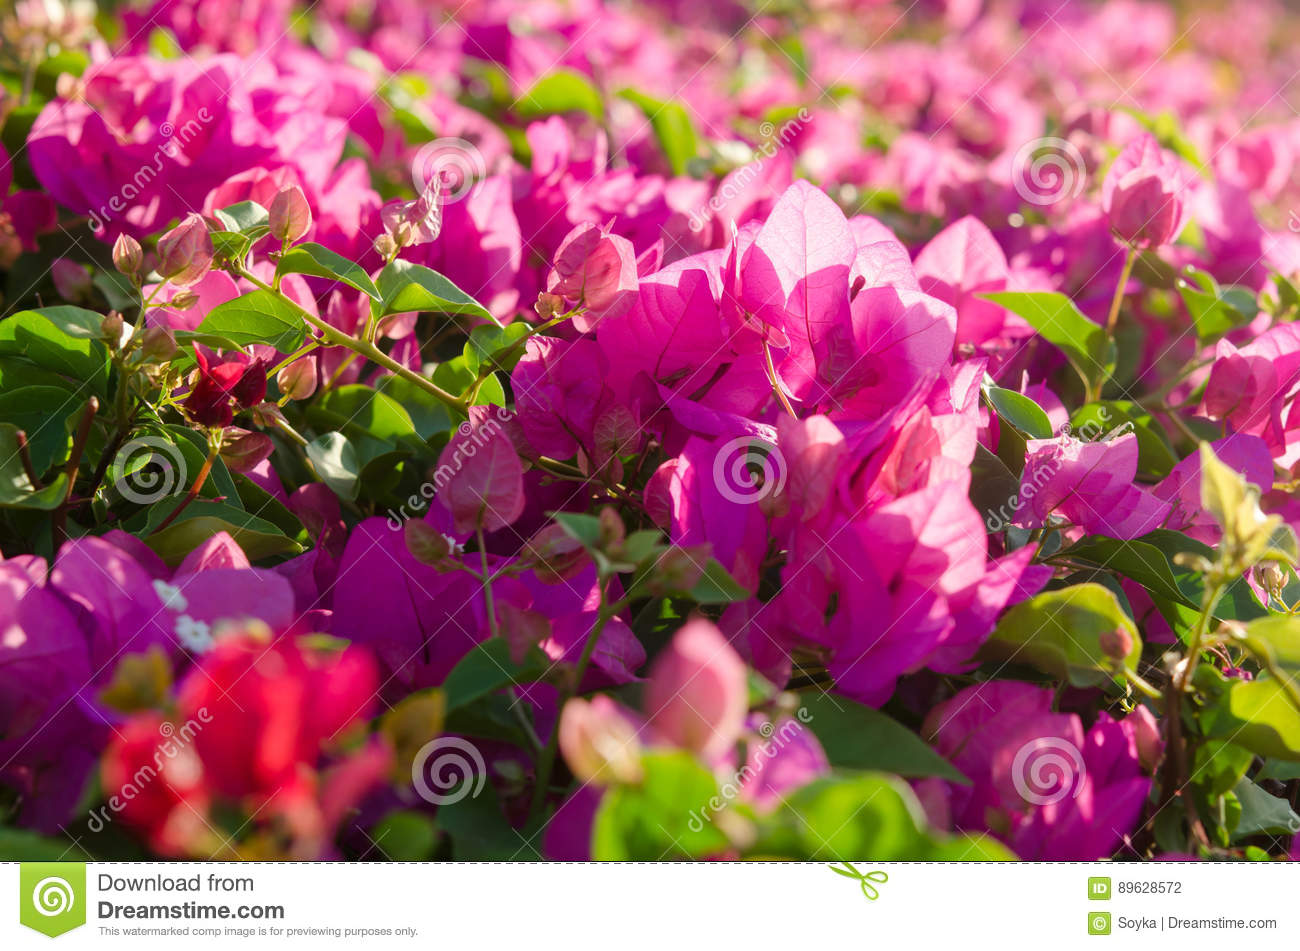 Flowering Bushes With Pink Flowers Stock Photo Image Of Magnolia